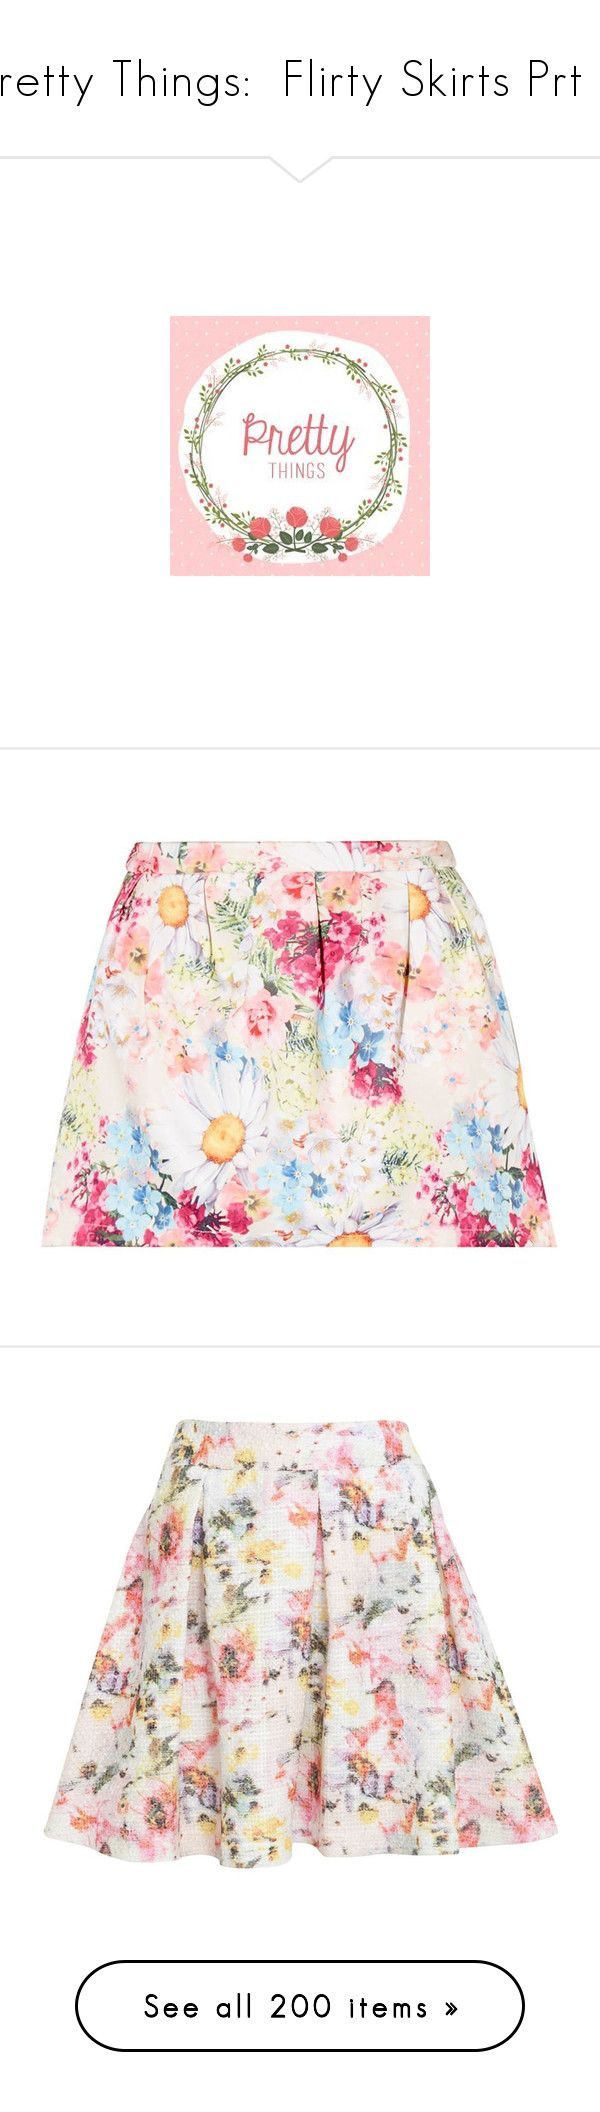 """Pretty Things:  Flirty Skirts Prt 2"" by atomik-concia ❤ liked on Polyvore featuring skirts, mini skirts, mini skirt, short floral skirt, short pleated skirt, white pleated mini skirt, pleated mini skirt, bottoms, saias and faldas"